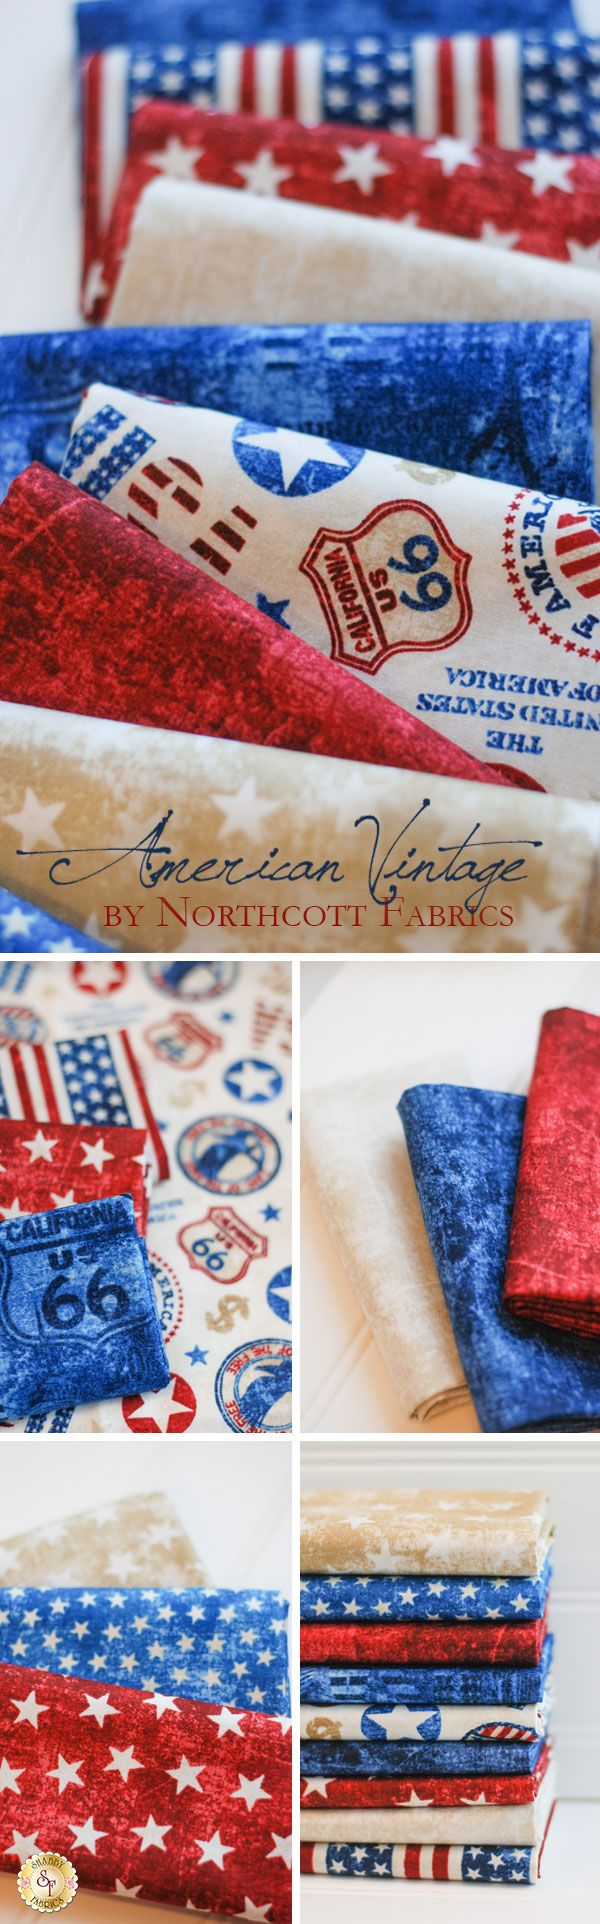 American Vintage - Northcott Fabrics Stitch a patriotic blanket or wall hanging with the American Vintage collection from Northcott Fabrics. With vintage and muted shades of red, white, and blue, this collection invokes classic Americana. Pair the print with USA stamps and emblems with a simple pattern of stars or a tonal piece with images of flags and road signs.